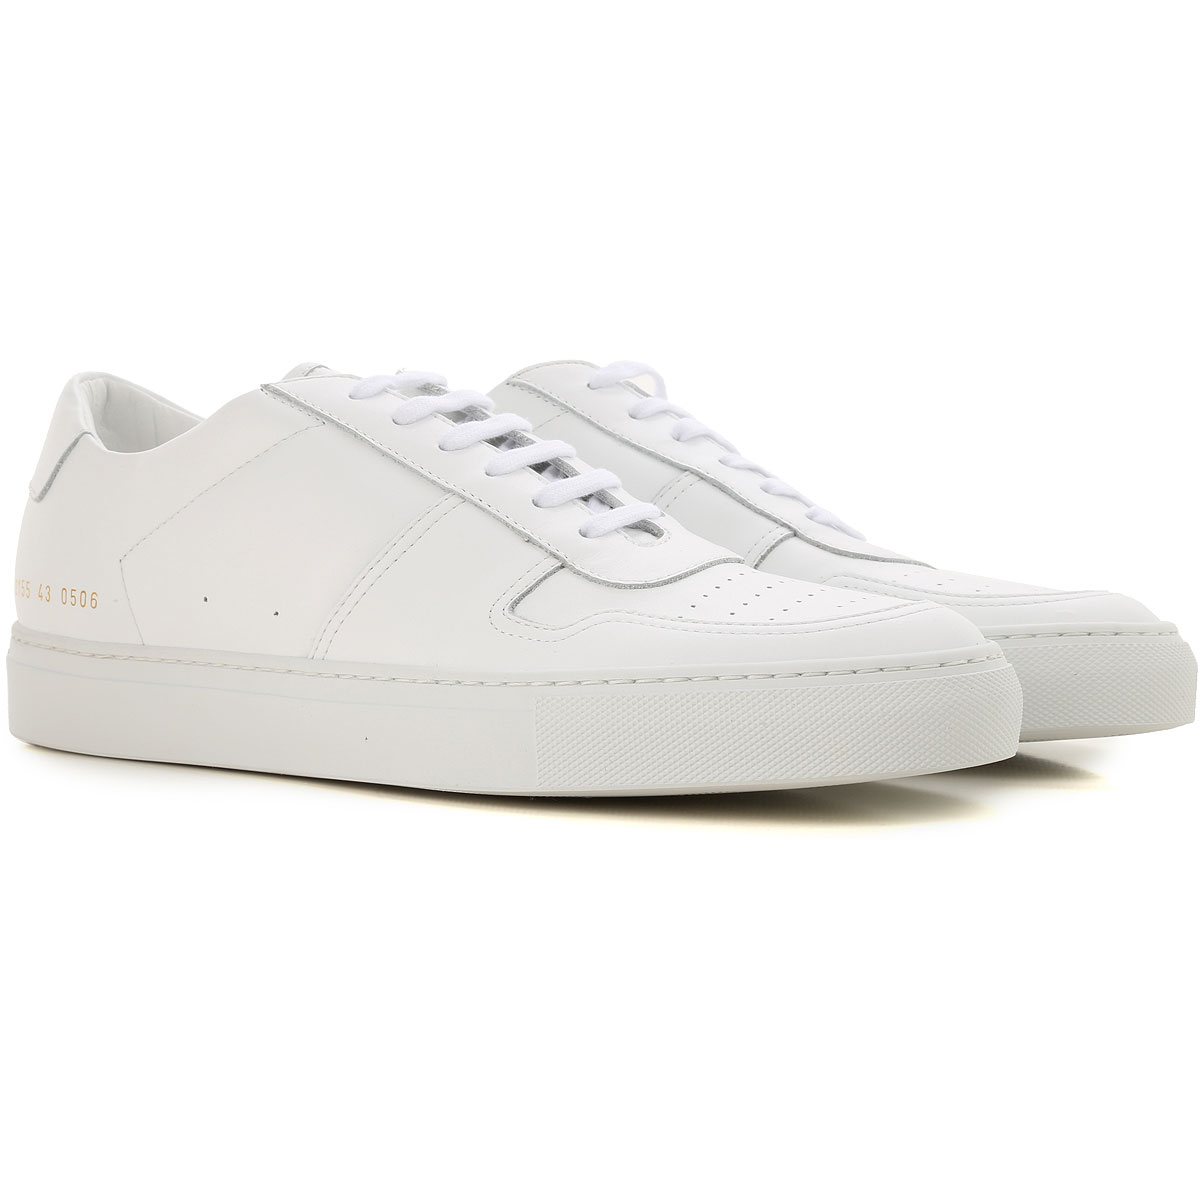 Image of Common Projects Sneakers for Men, White, Leather, 2017, 10 10.5 6.5 7.5 8